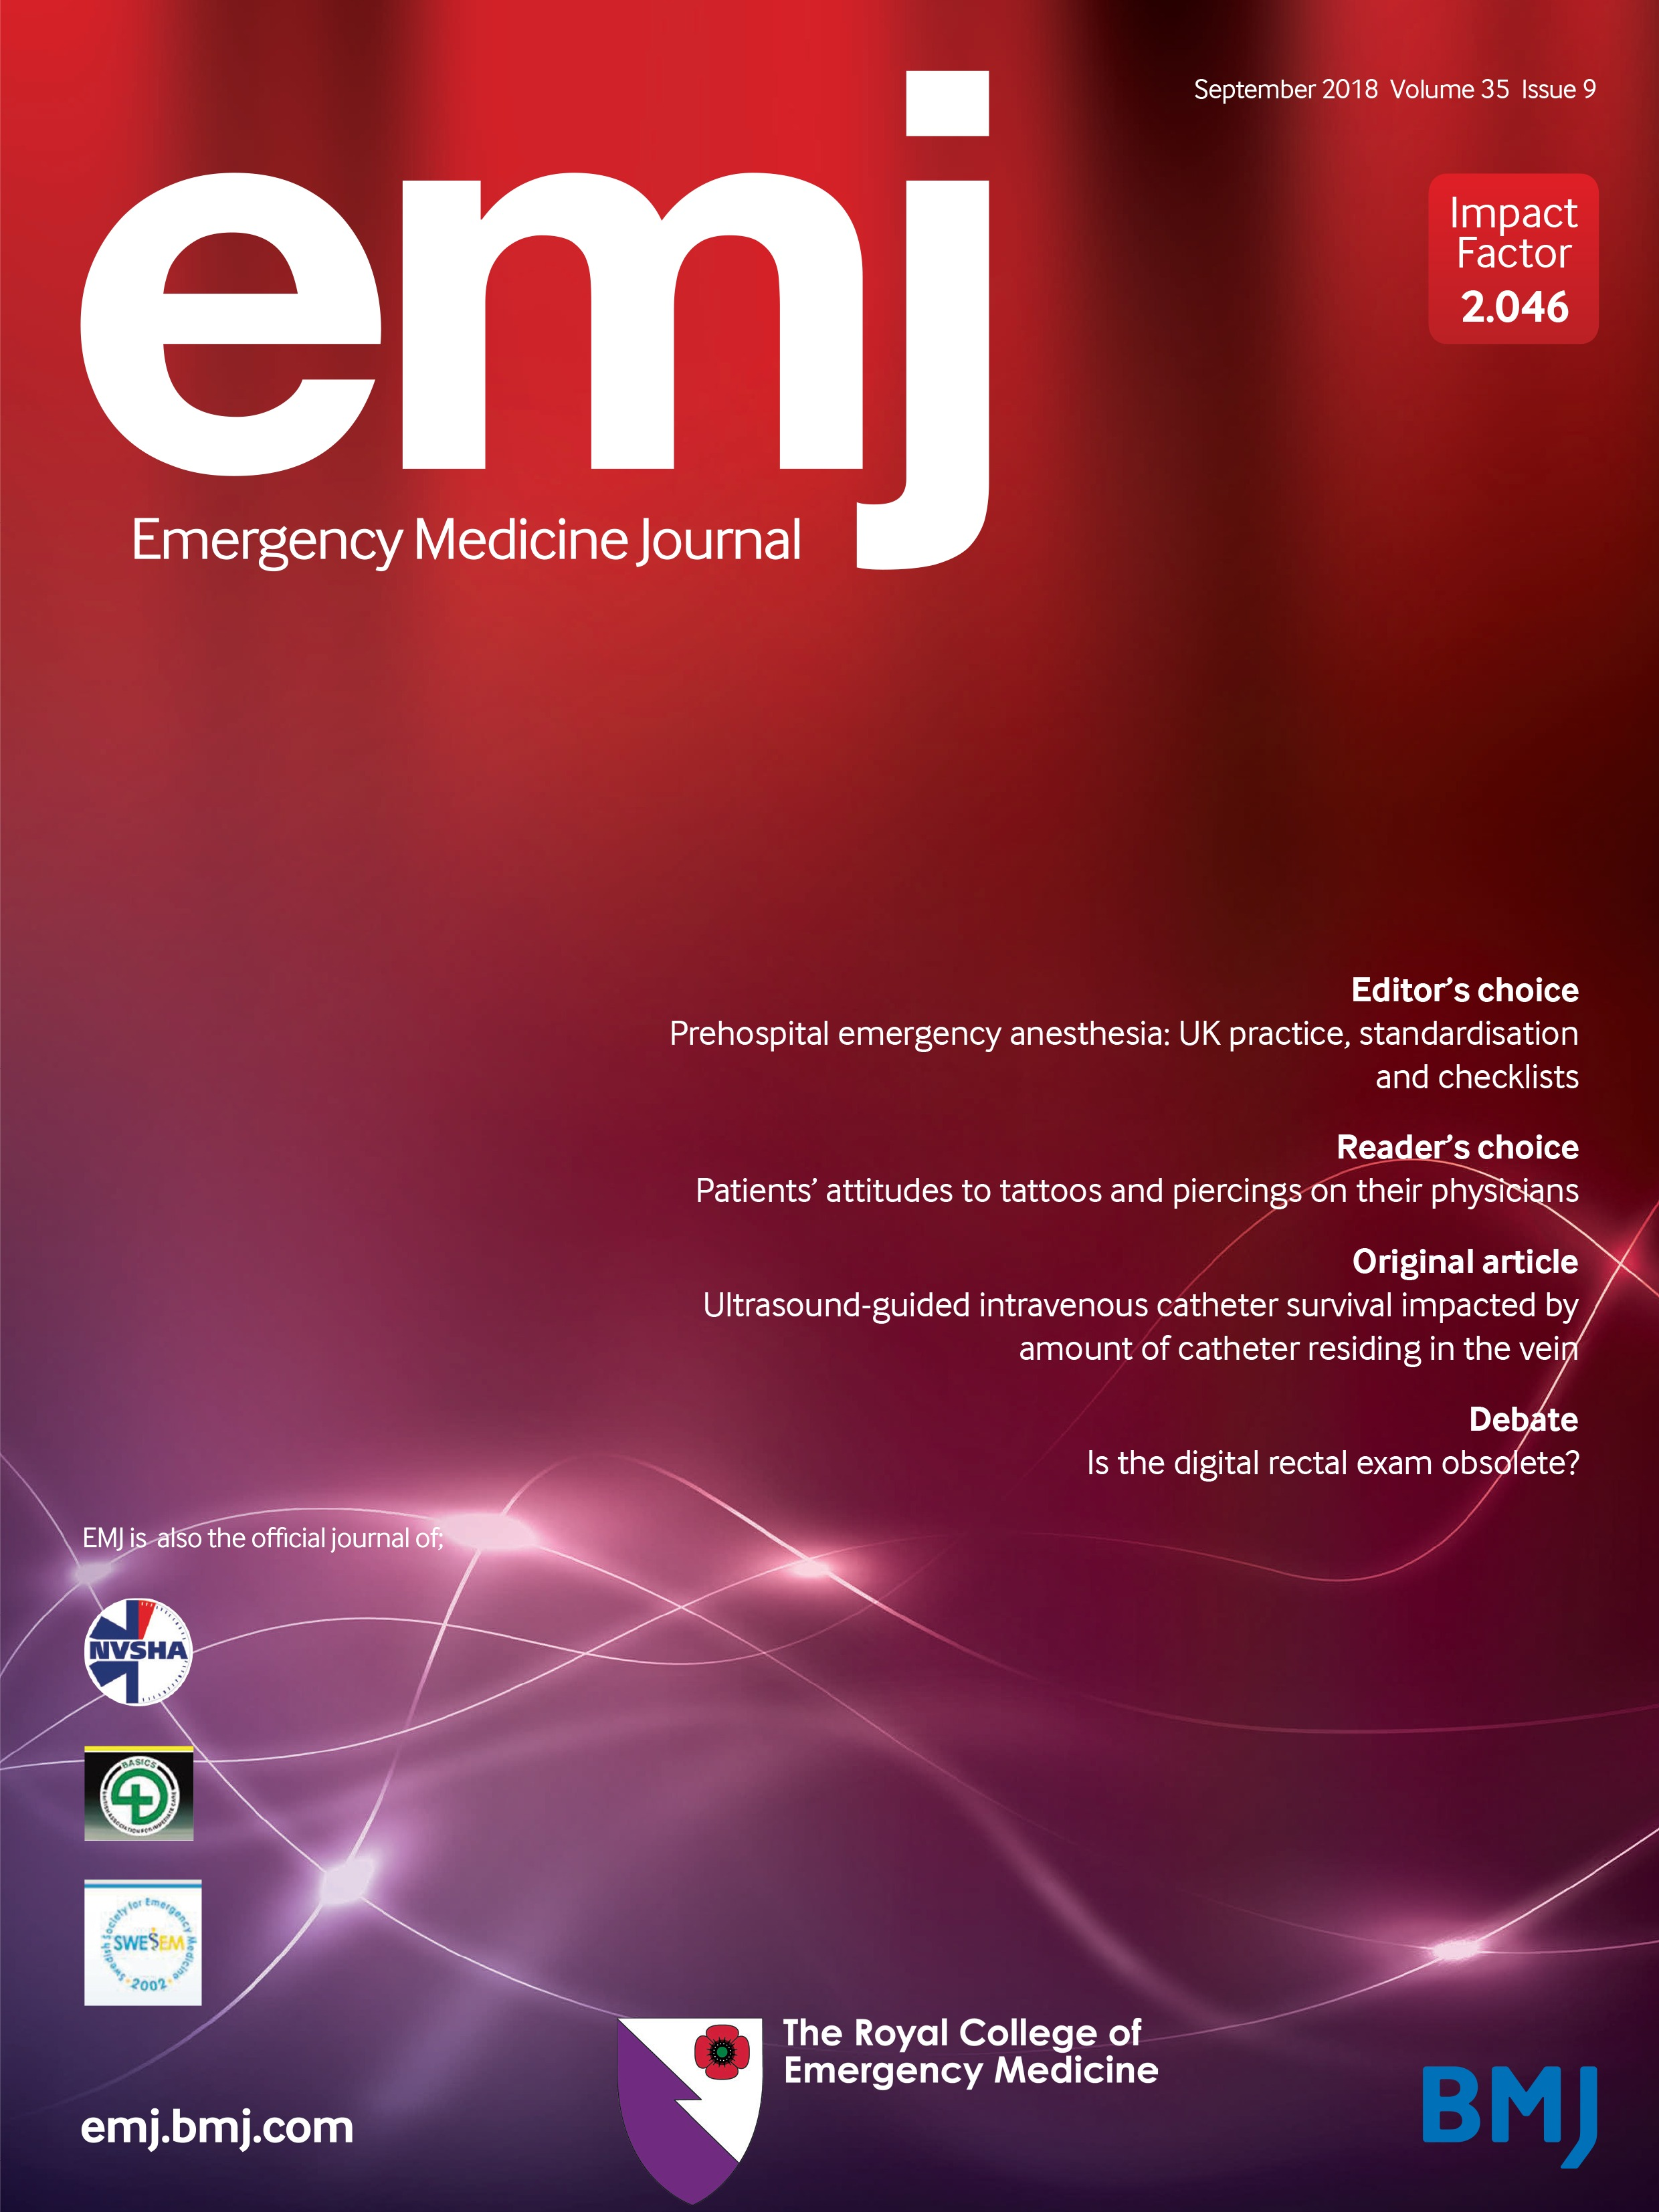 Outcomes of beta blocker use in cocaine-associated chest pain: a